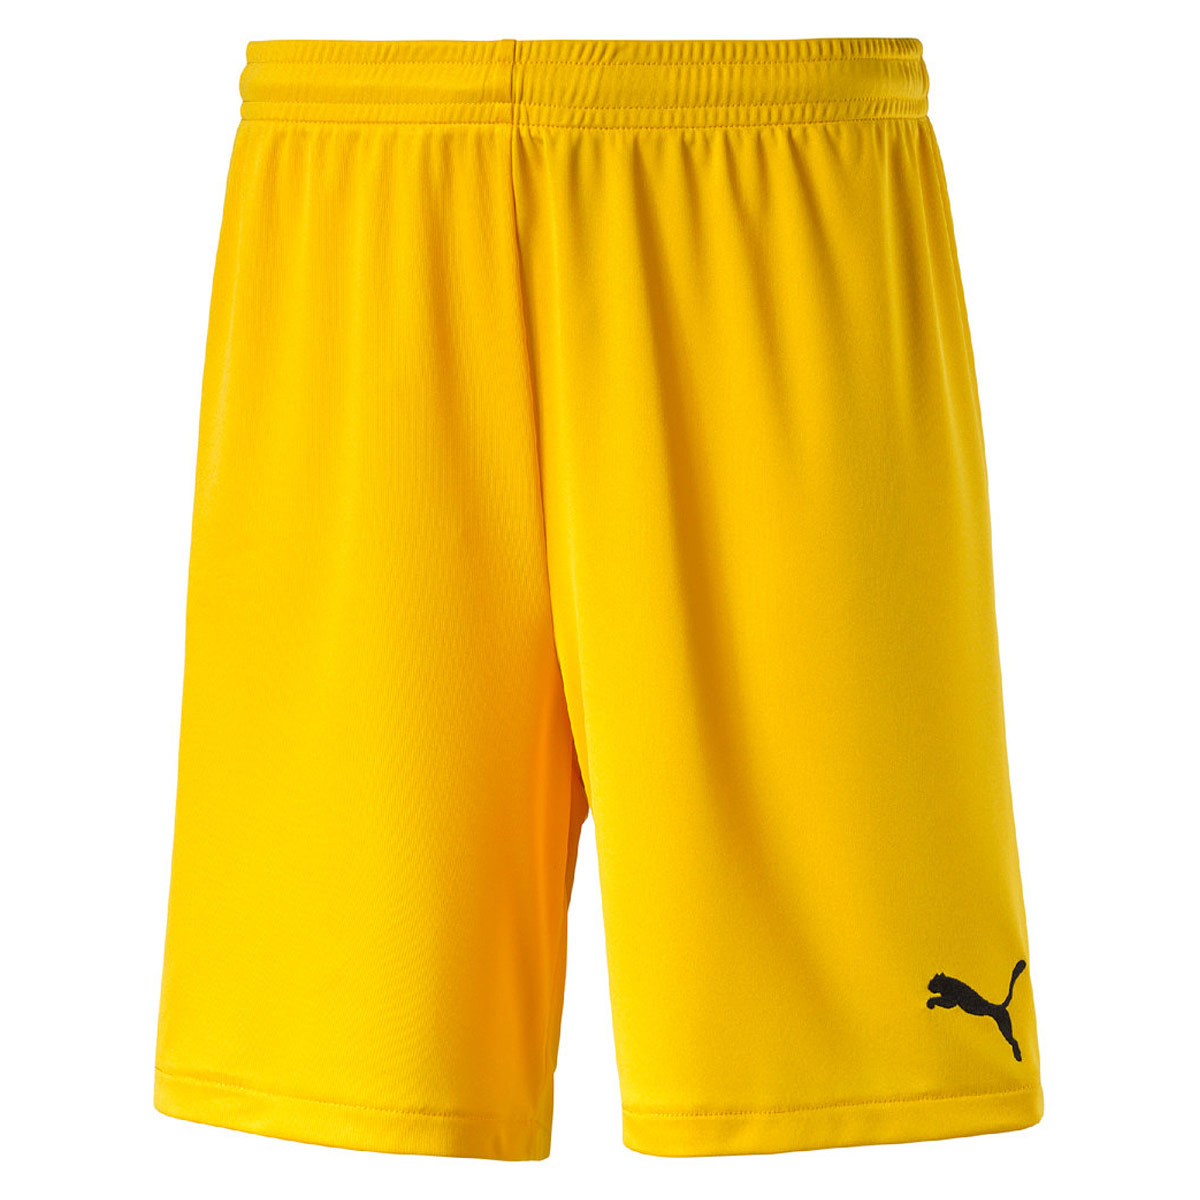 5d0f11accad9 Puma Velize Shorts W.out Inner Slip - Fitness trousers - Yellow